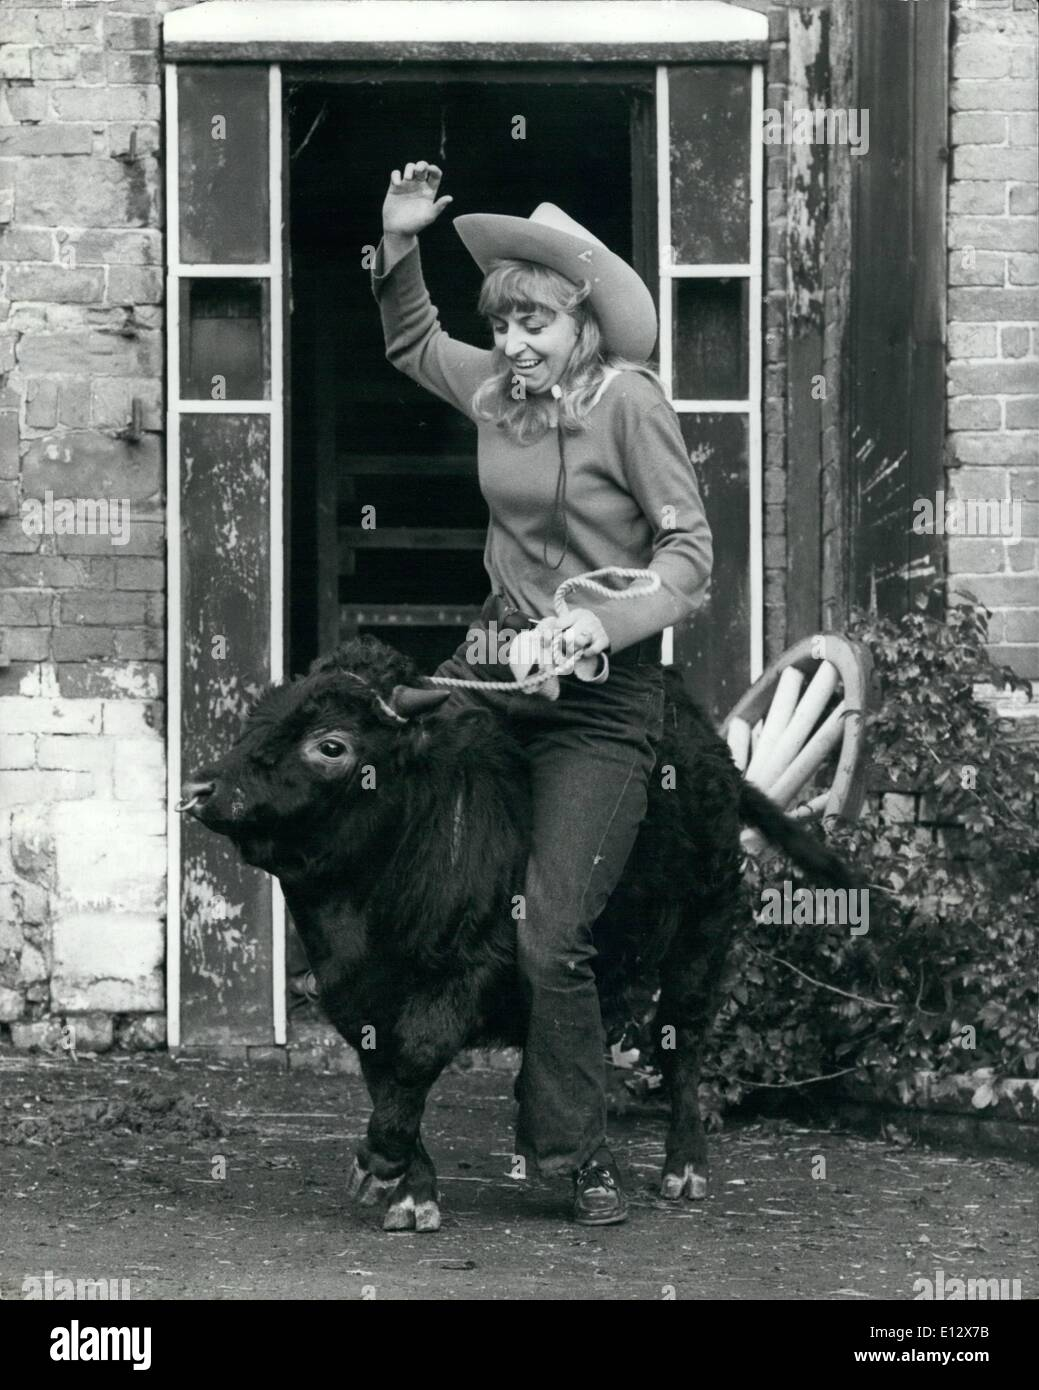 Feb. 25, 2012 - Ride 'em cowgirl! Vivien Brooke, the daughter of Mrs Jean Haddock, who owns Beteman's Green Farm tries ''Titch'' out as a bucking bull. - Stock Image